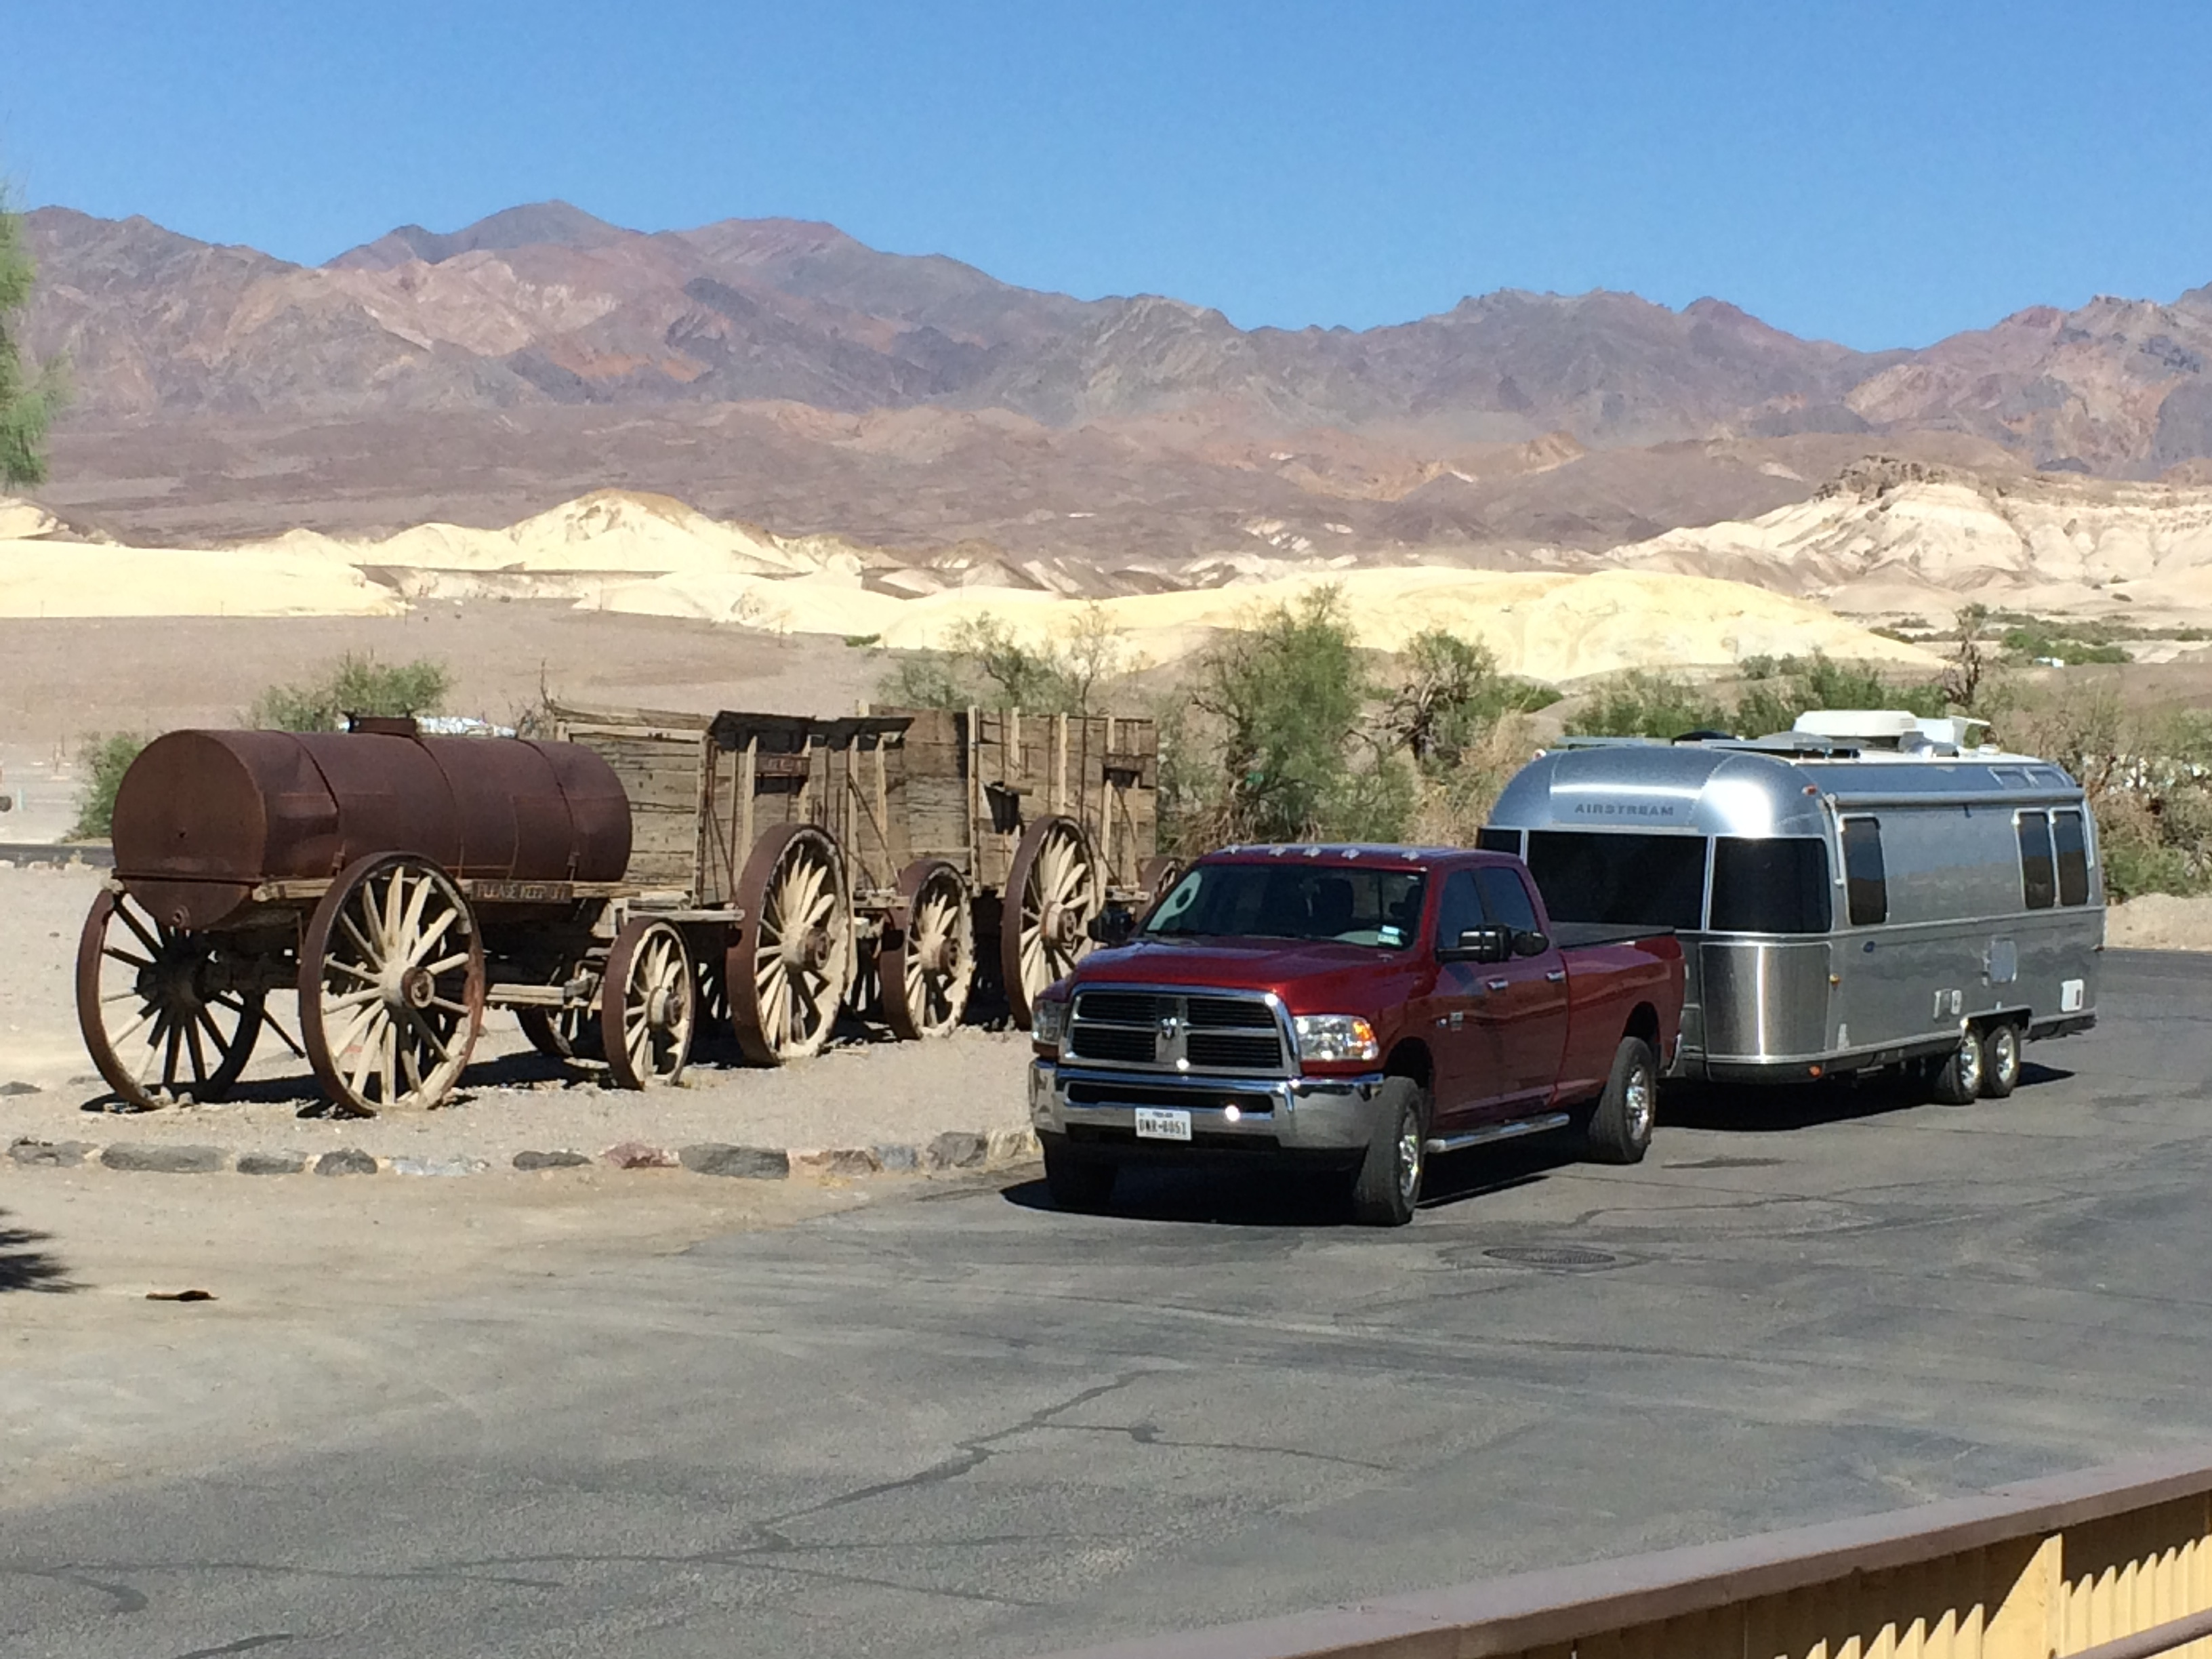 Bart and Flo posing next to the original Twenty Mule Team wagons  at Furnace Creek in Death Valley.